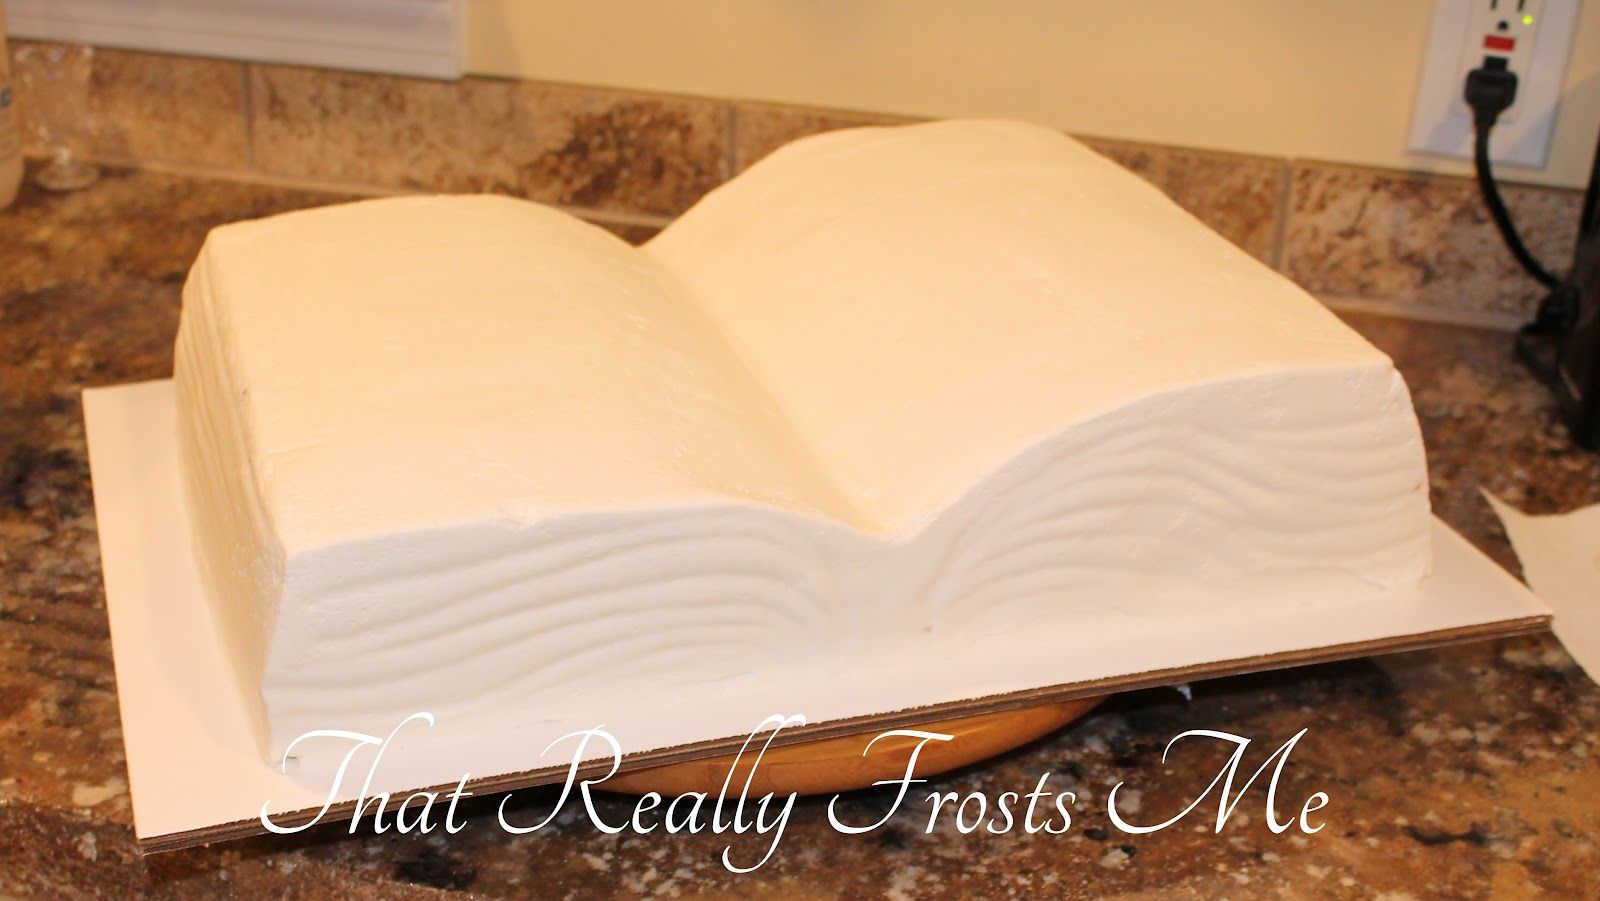 Sunday School Bible Cake With Images Bible Cake Book Cakes